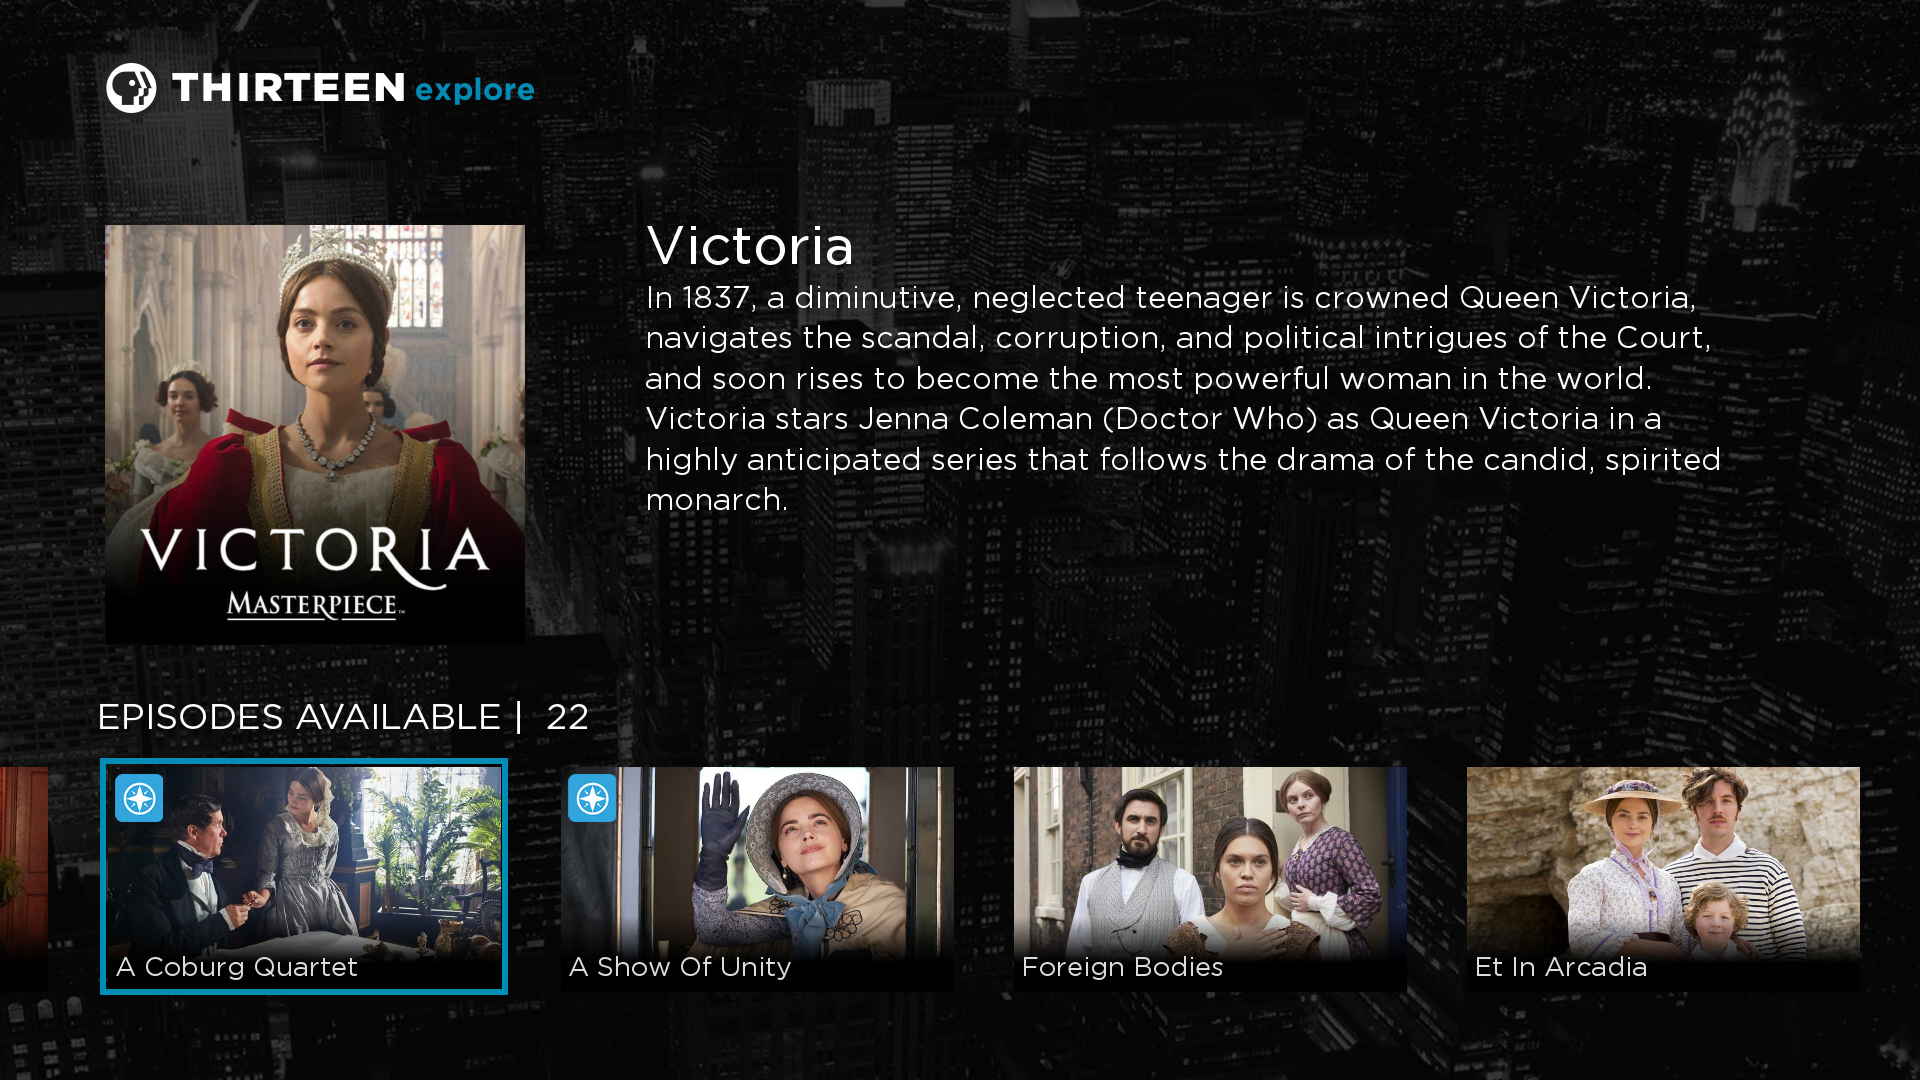 Roku app screen showing the Victoria show with Passport episodes